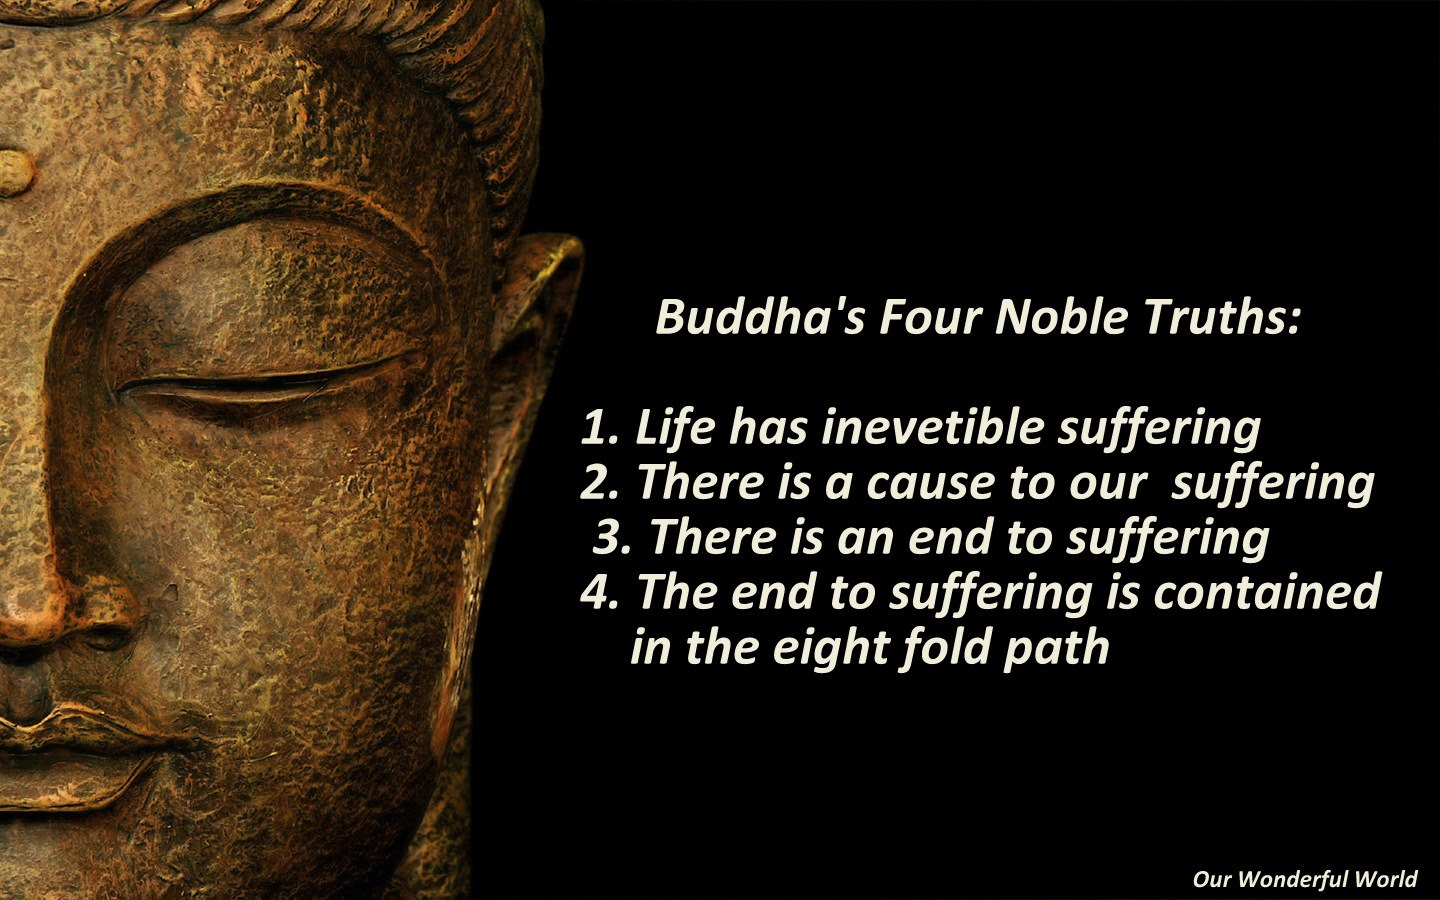 The 8 fold paths & the four nobel truths on emaze